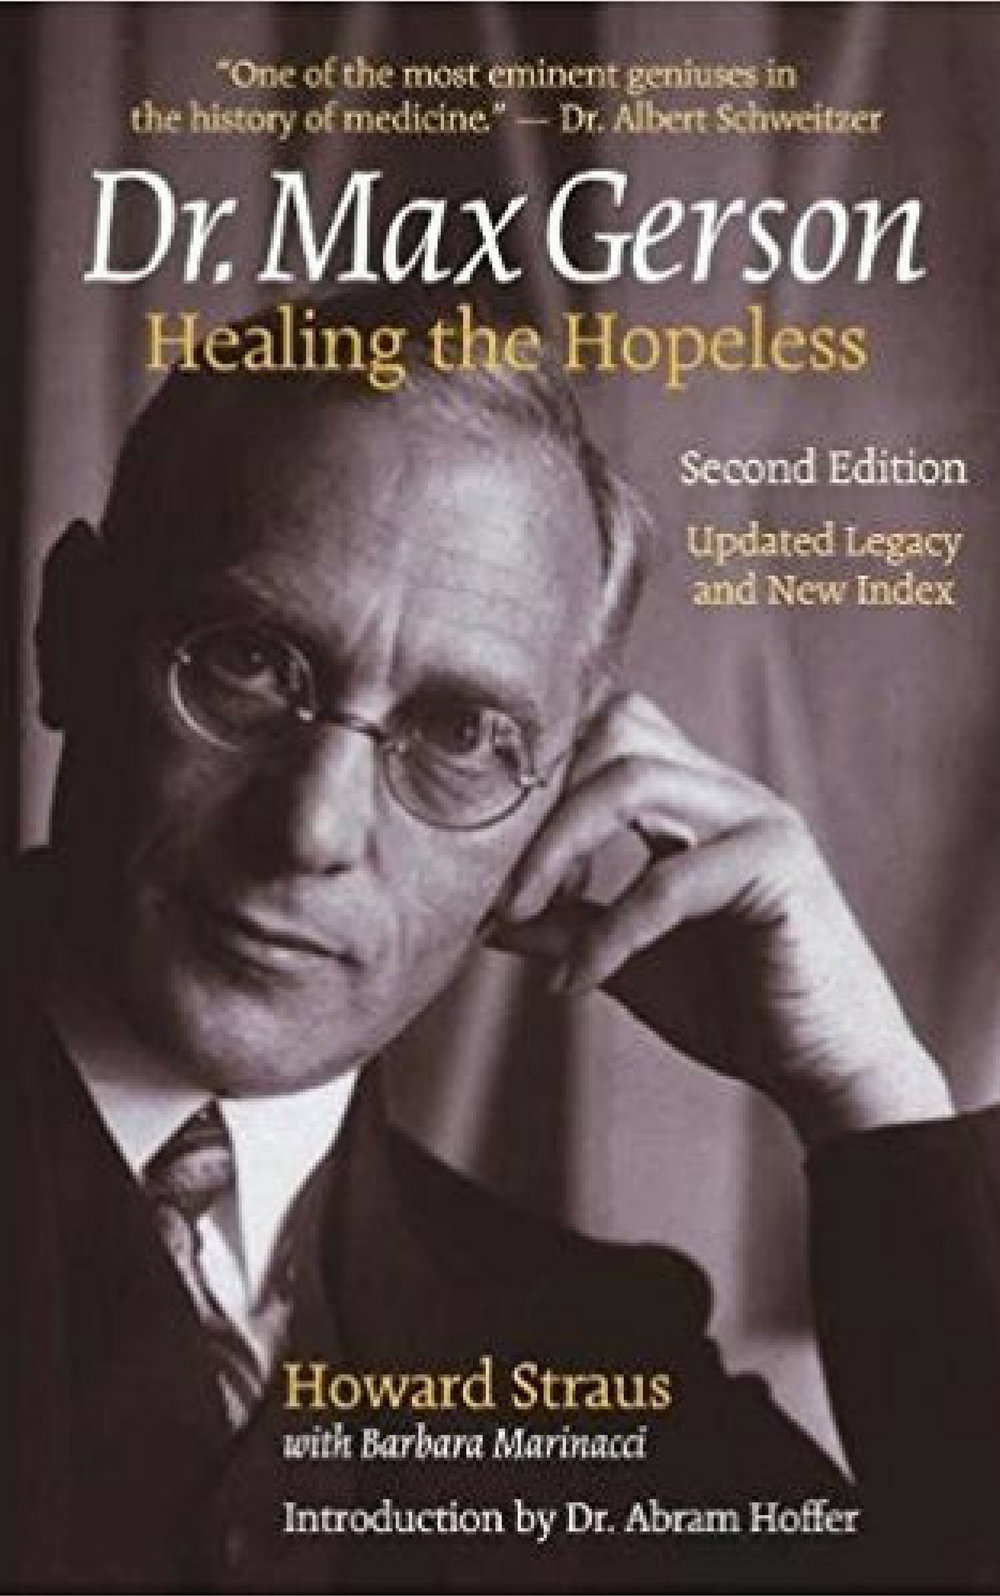 Dr. Max Gerson - Healing the Hopeless